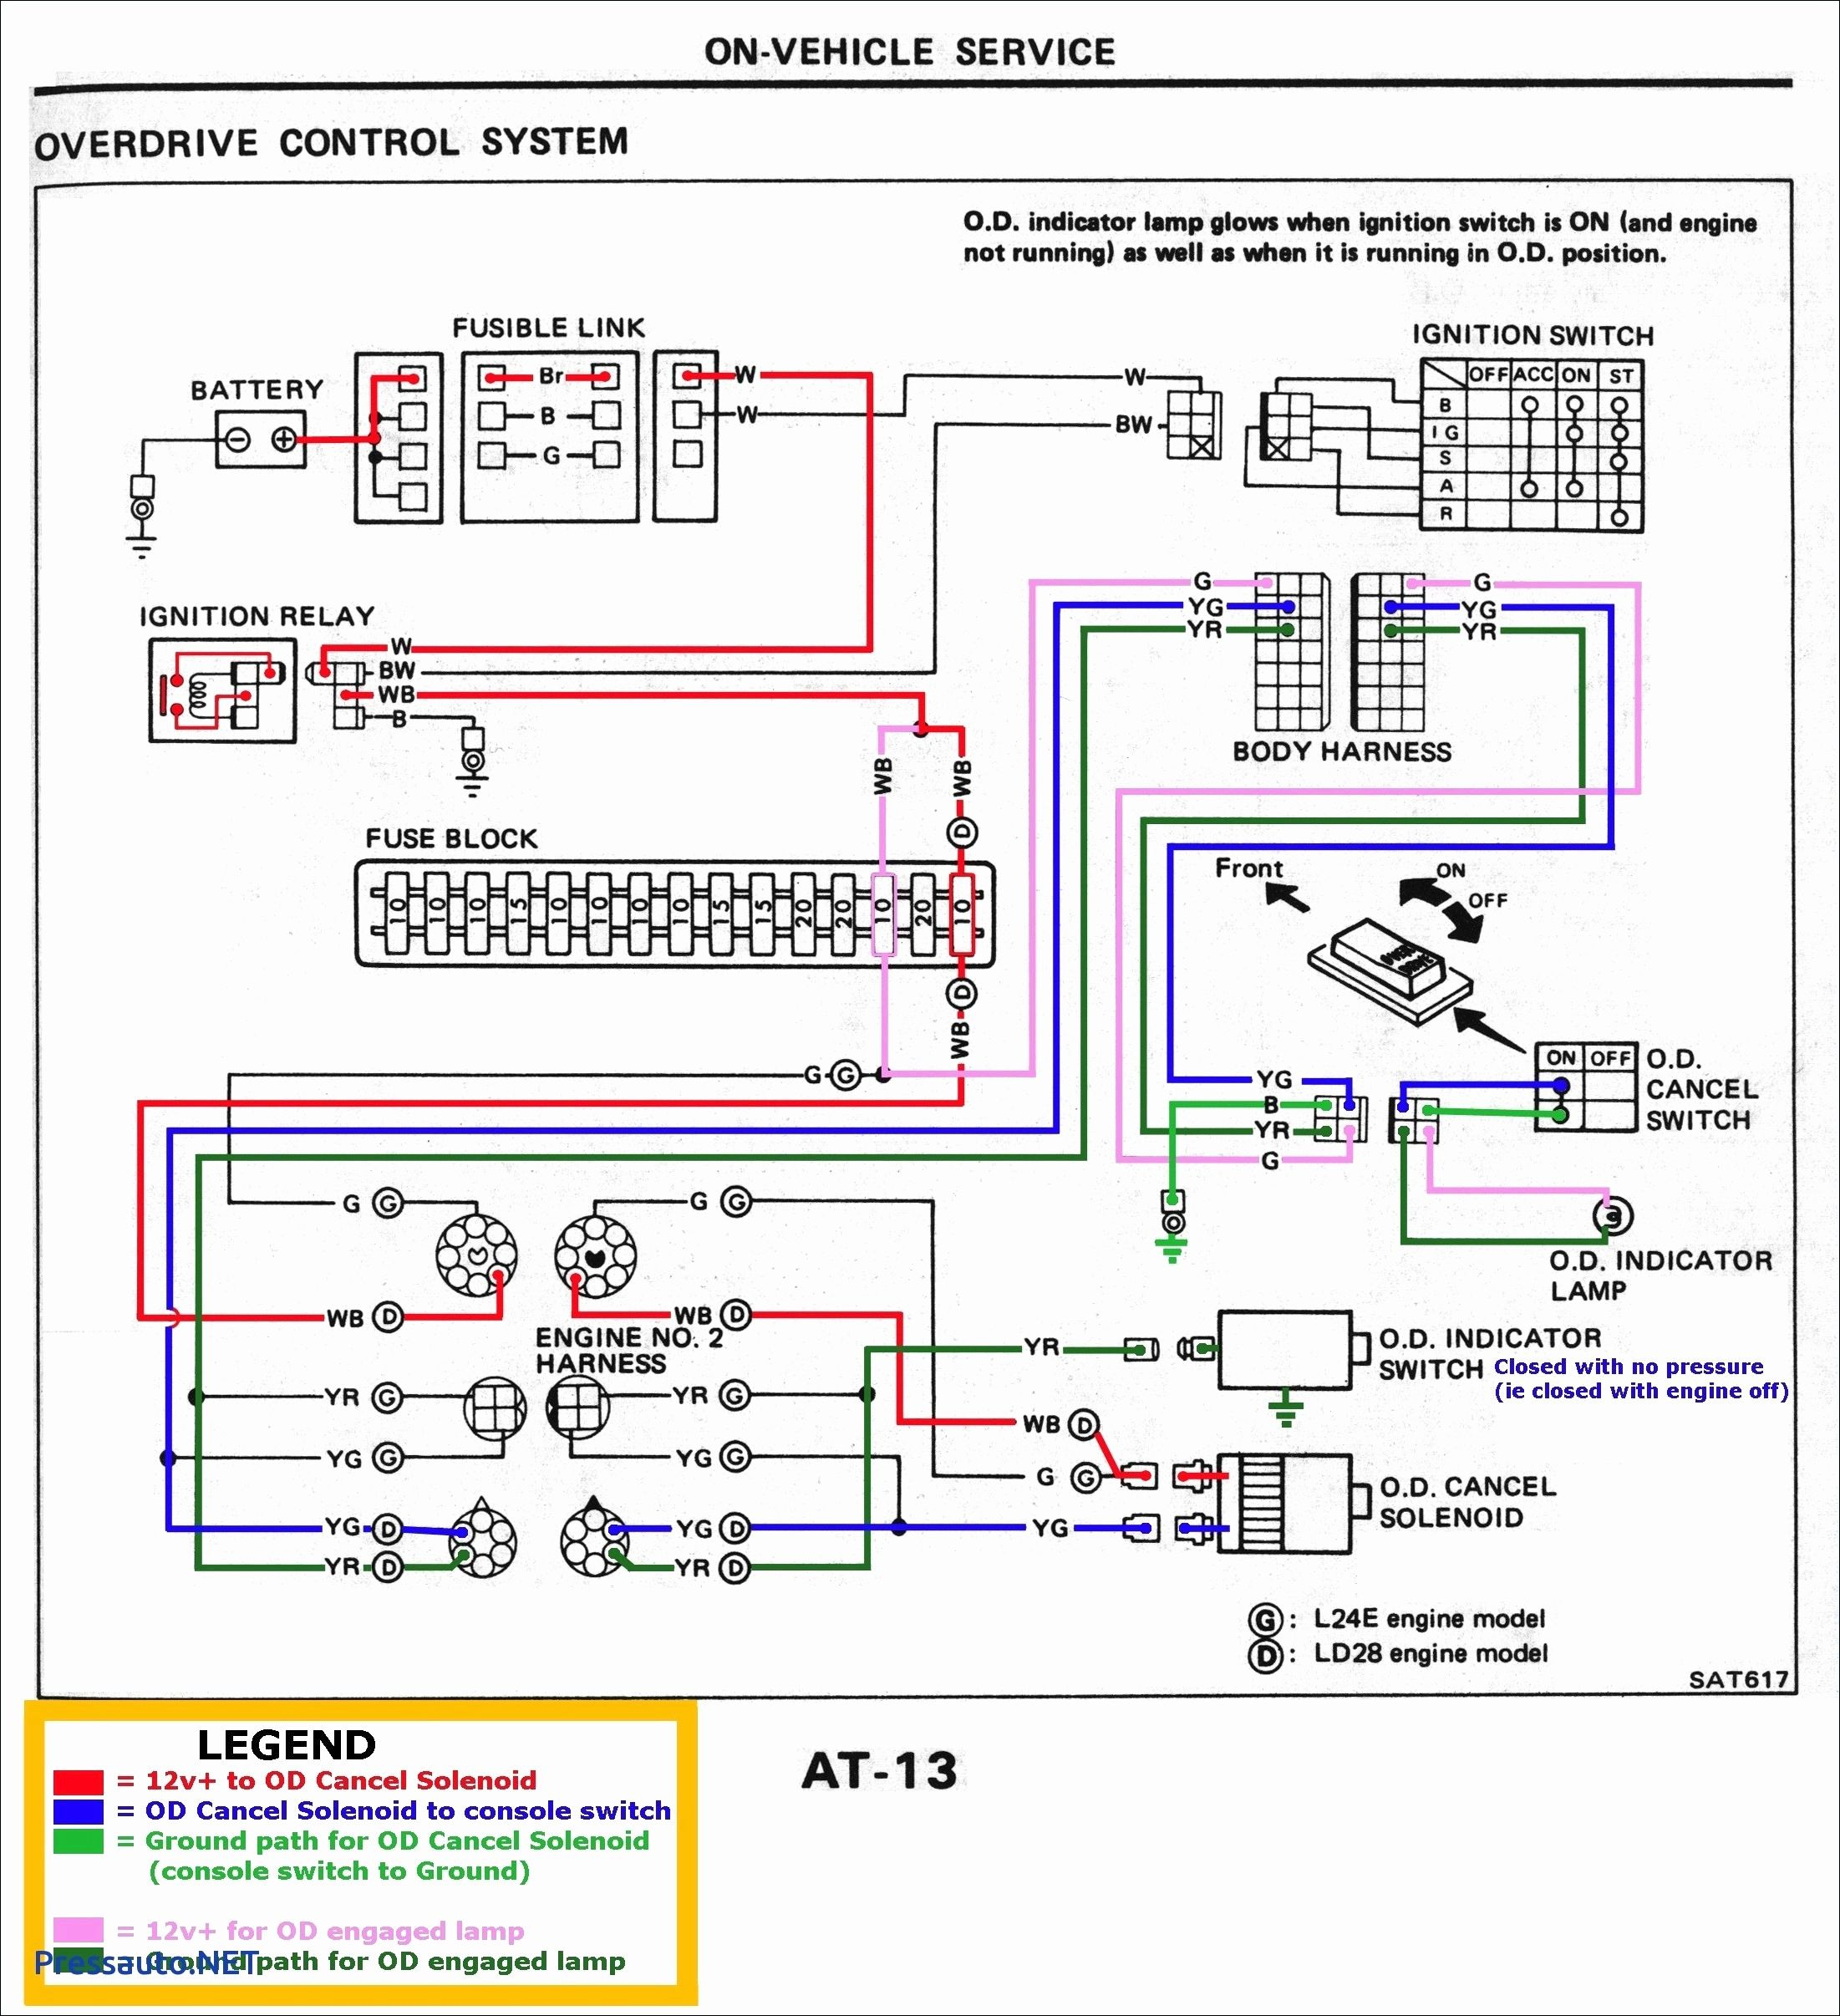 Heat Pump Thermostat Wiring Diagram New Nest Wiring Diagram Heat - Wiring Diagram For Heat Pumps For Nest